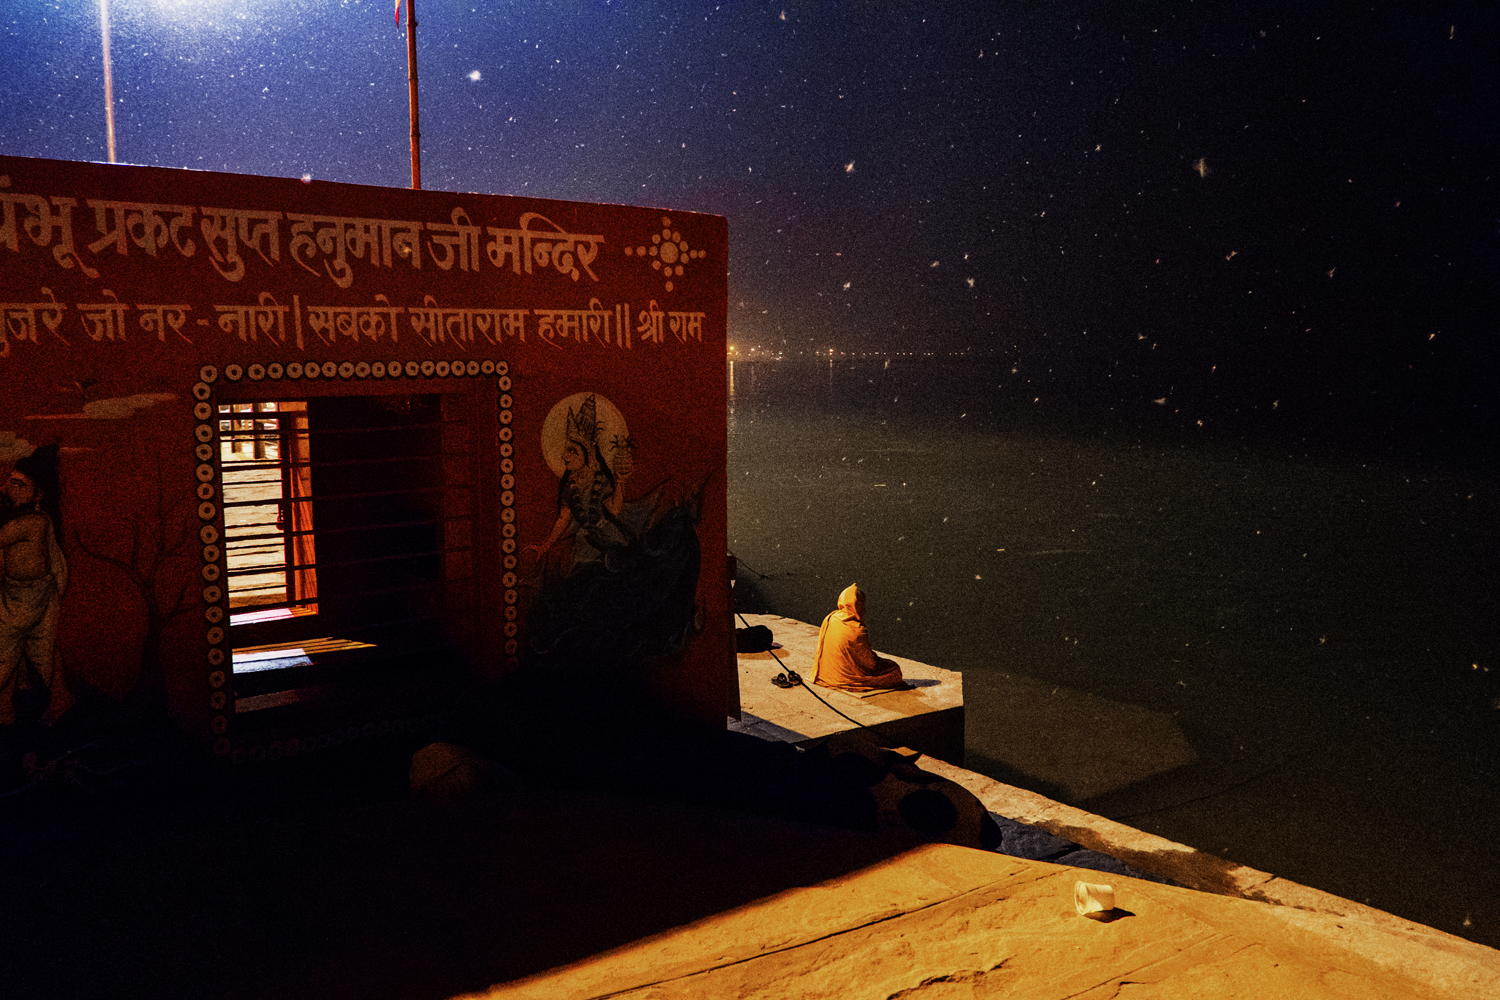 A devotee meditates in front of a small temple near Assi Ghat a cremation site overlooking the Ganga River. Thousands of devotees and pilgrims flock continuously to the holy city of Varanasi in Uttar Pradesh, India.